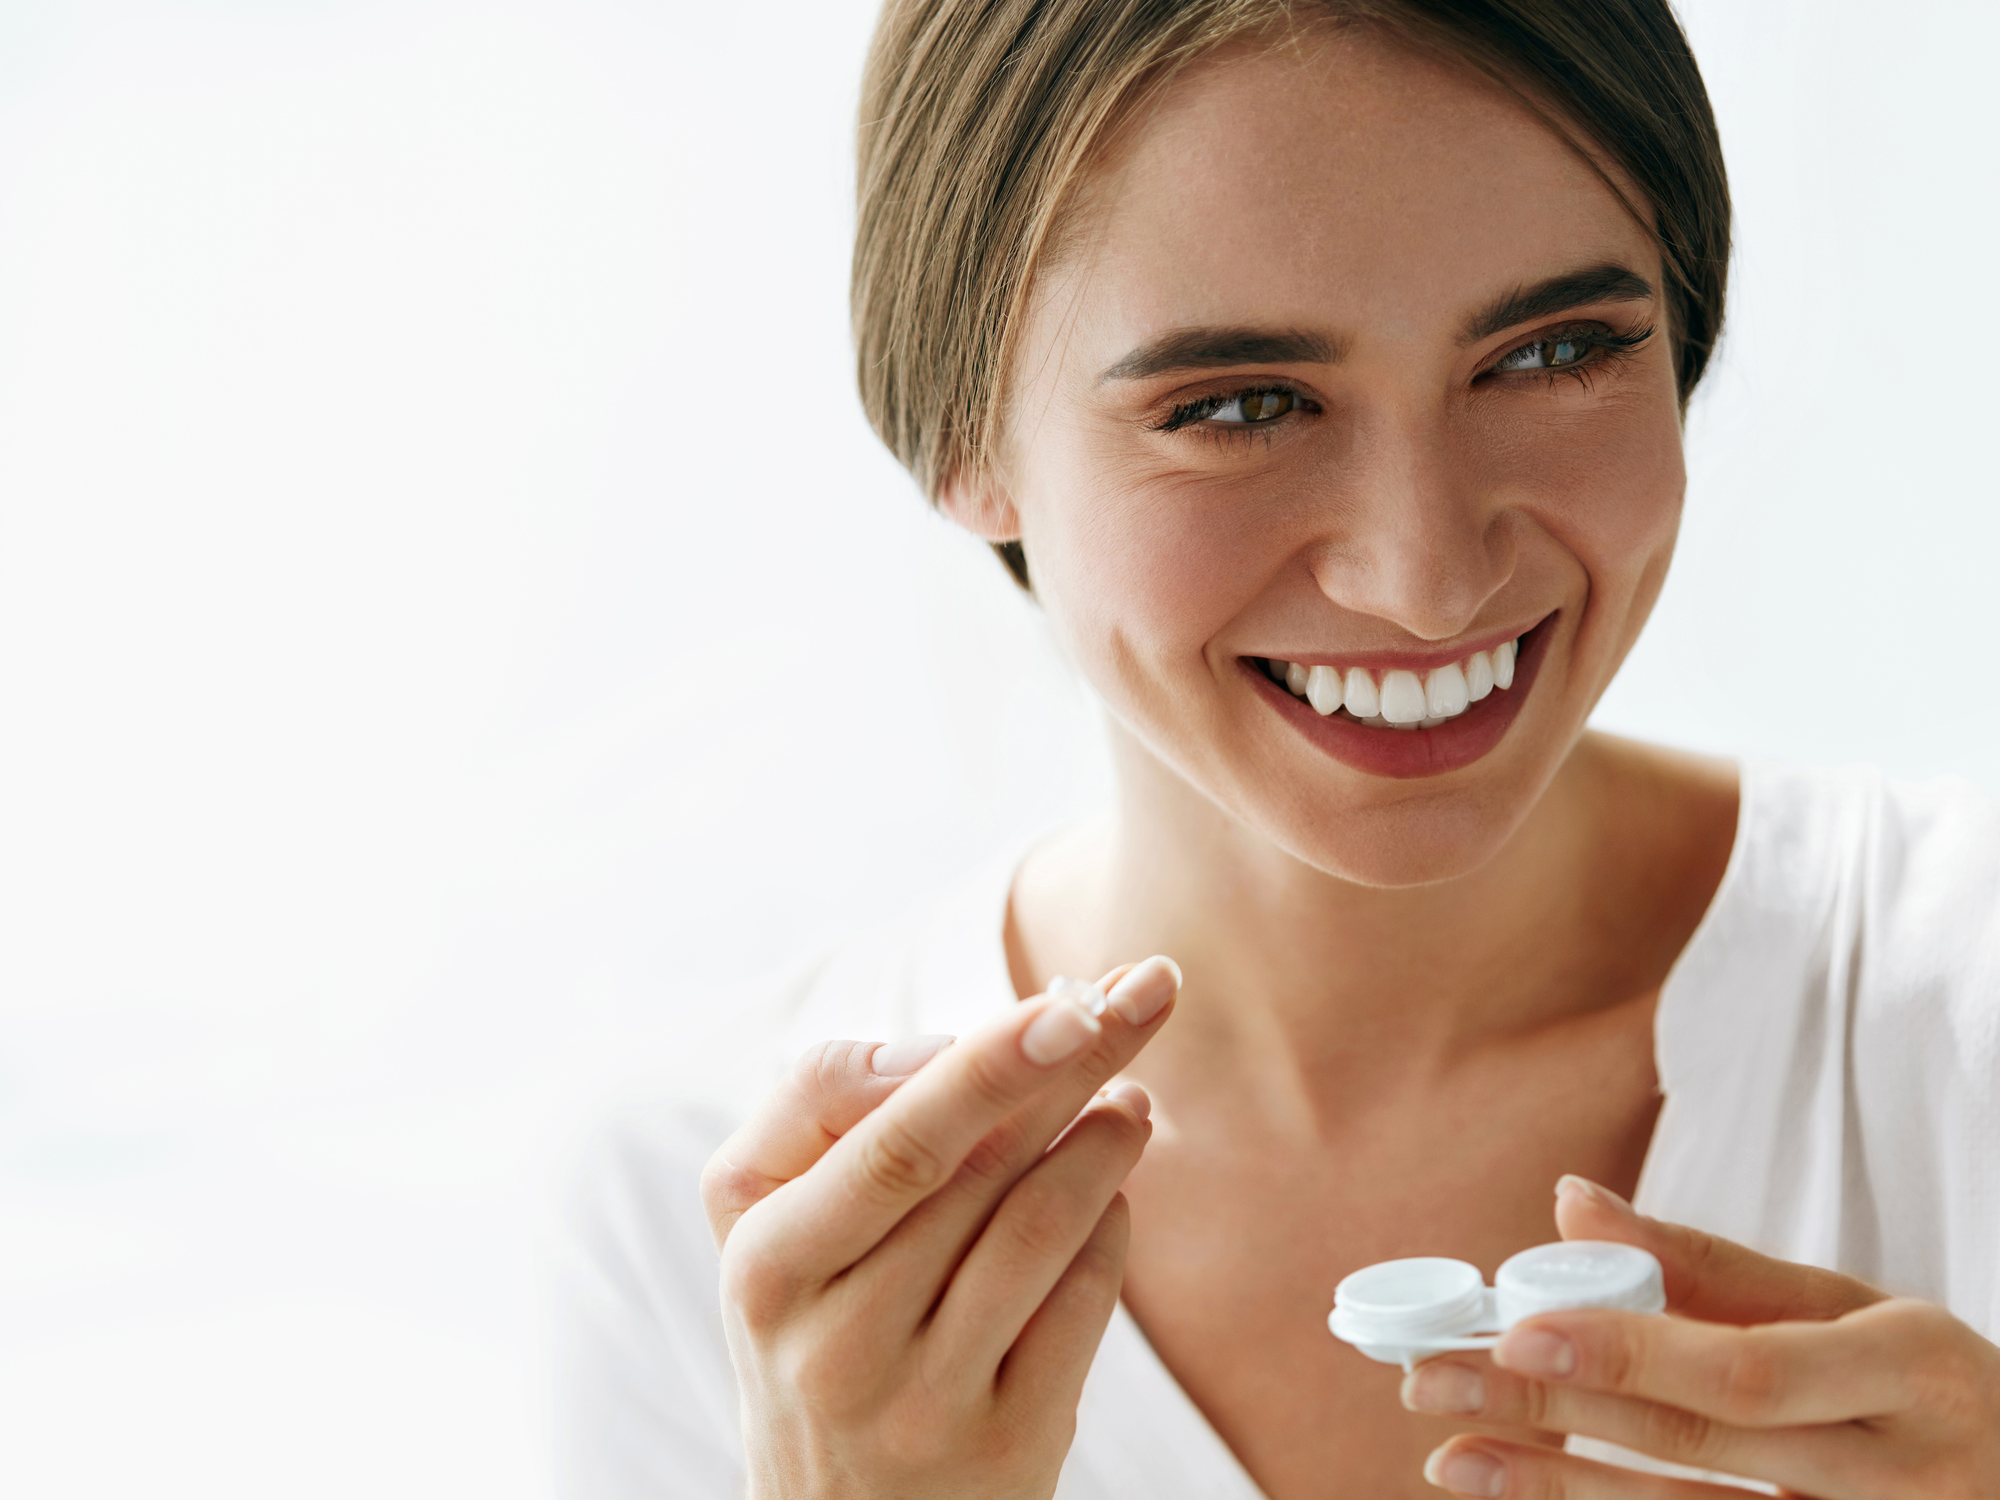 Specialty Contact Lenses: What's Best for Me?